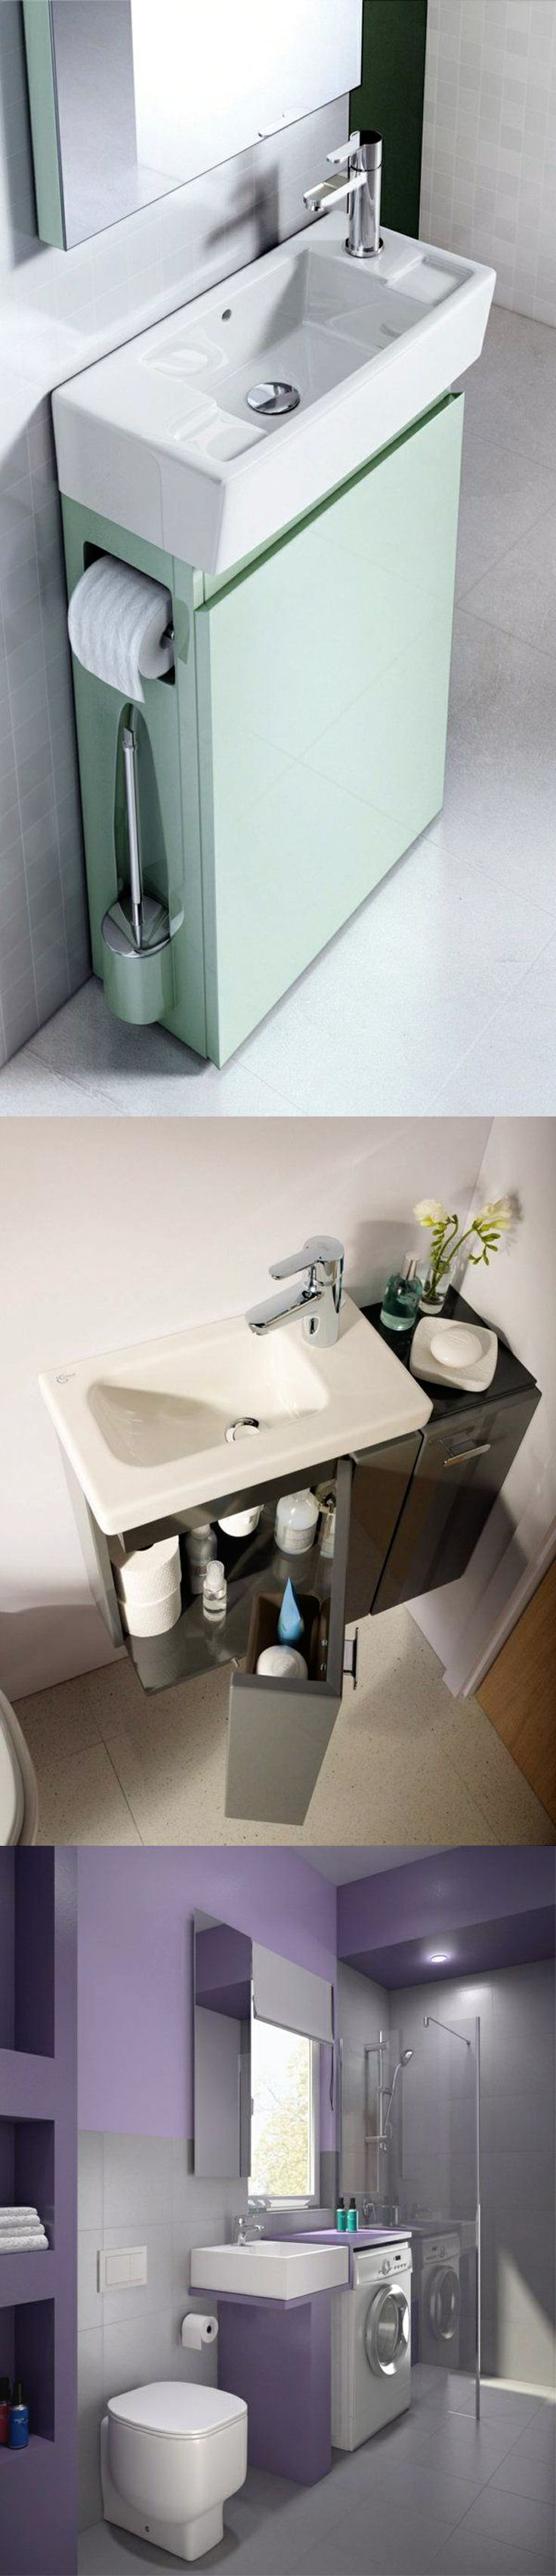 Small Bathroom Furniture You Ll Love Bathroom Sink Decor Bathroom Sink Remodel Bathroom Layout